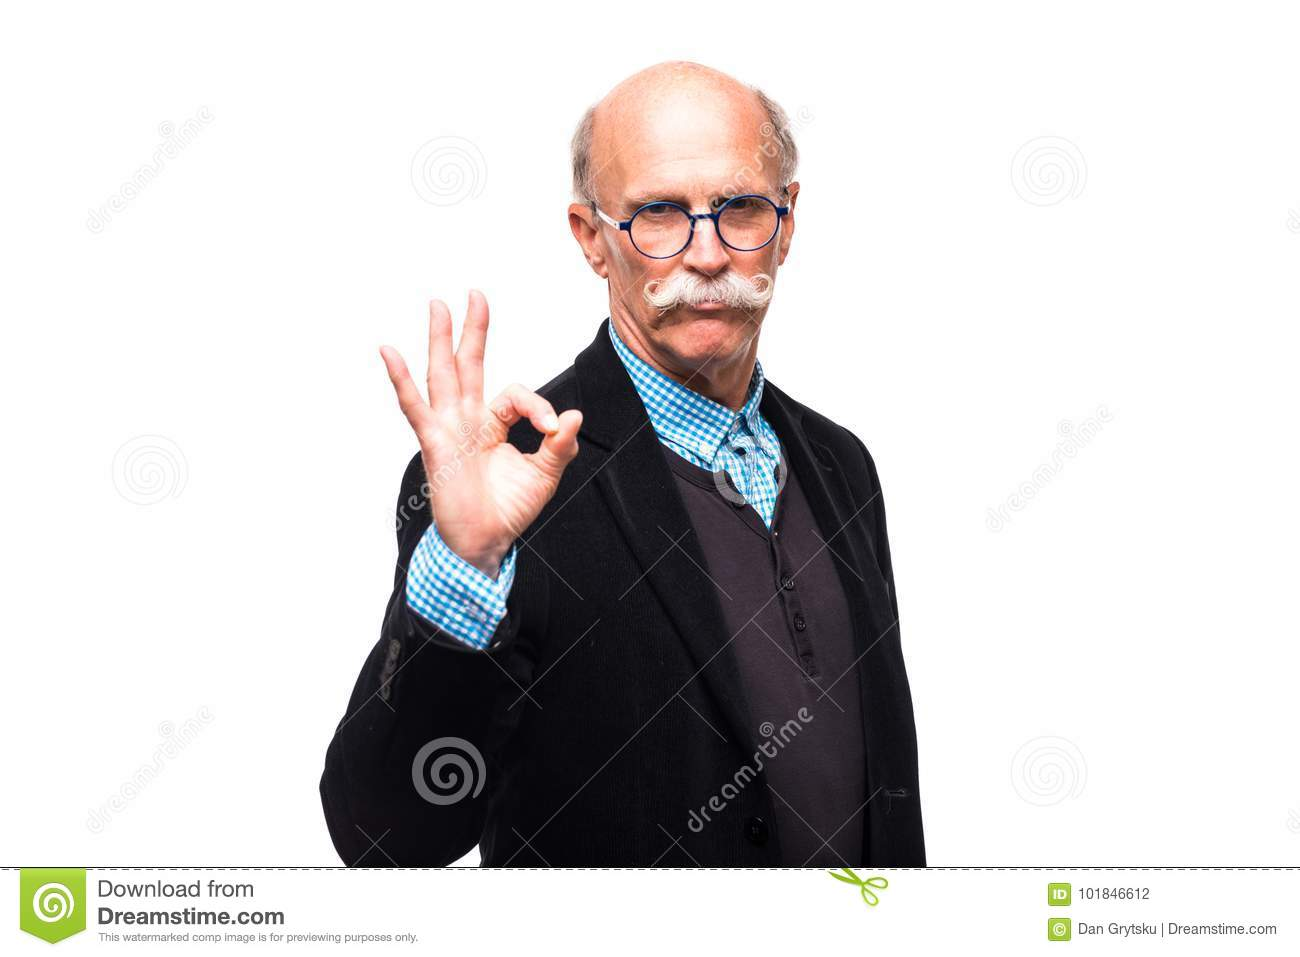 Closeup portrait of senior, mature, happy, smiling excited business man  giving thumbs up